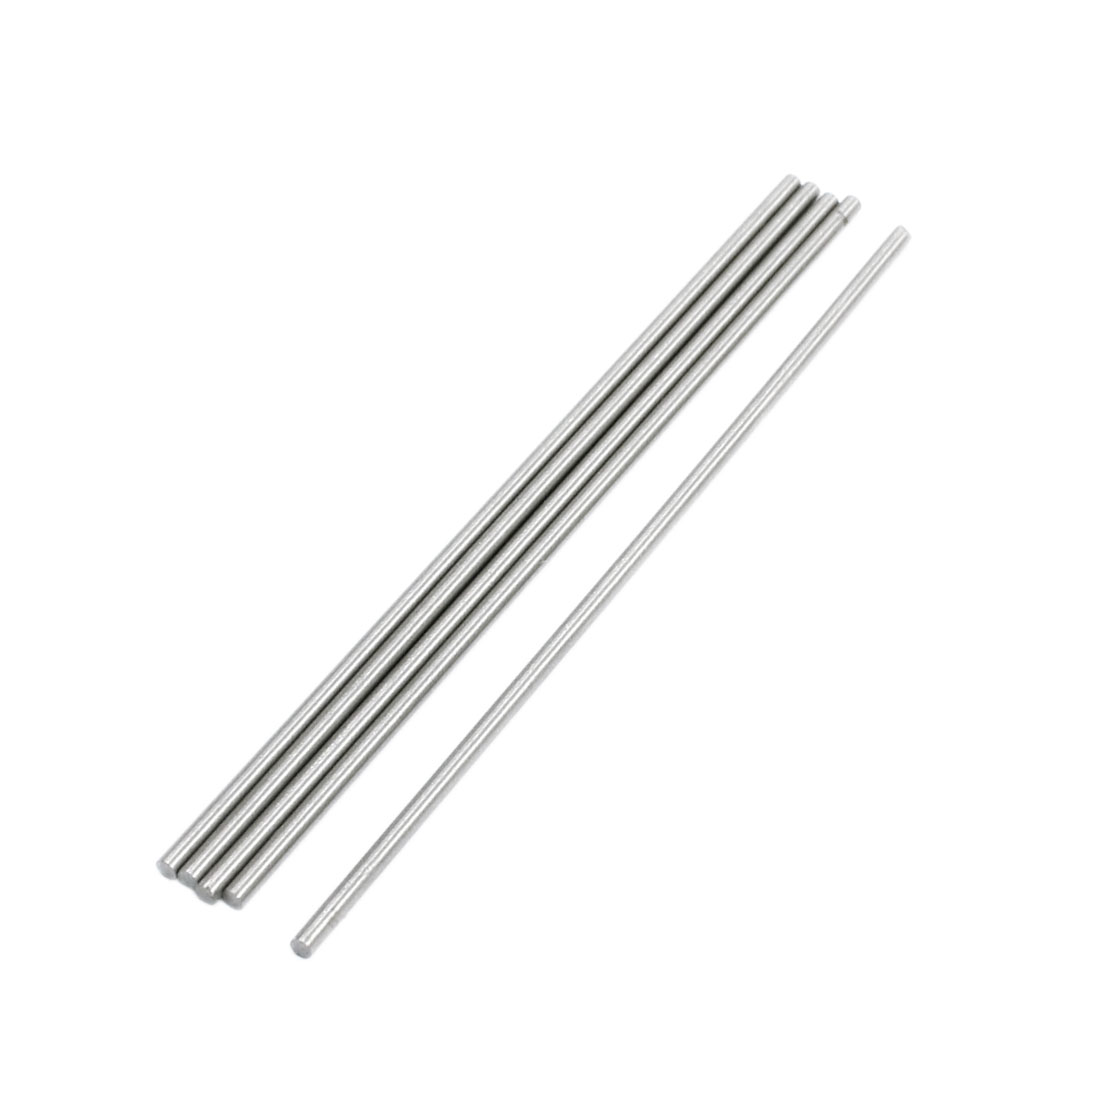 Lathe 100mm x 2mm Stainless Steel Axle Round Rod Stock Drill Bar 5Pcs